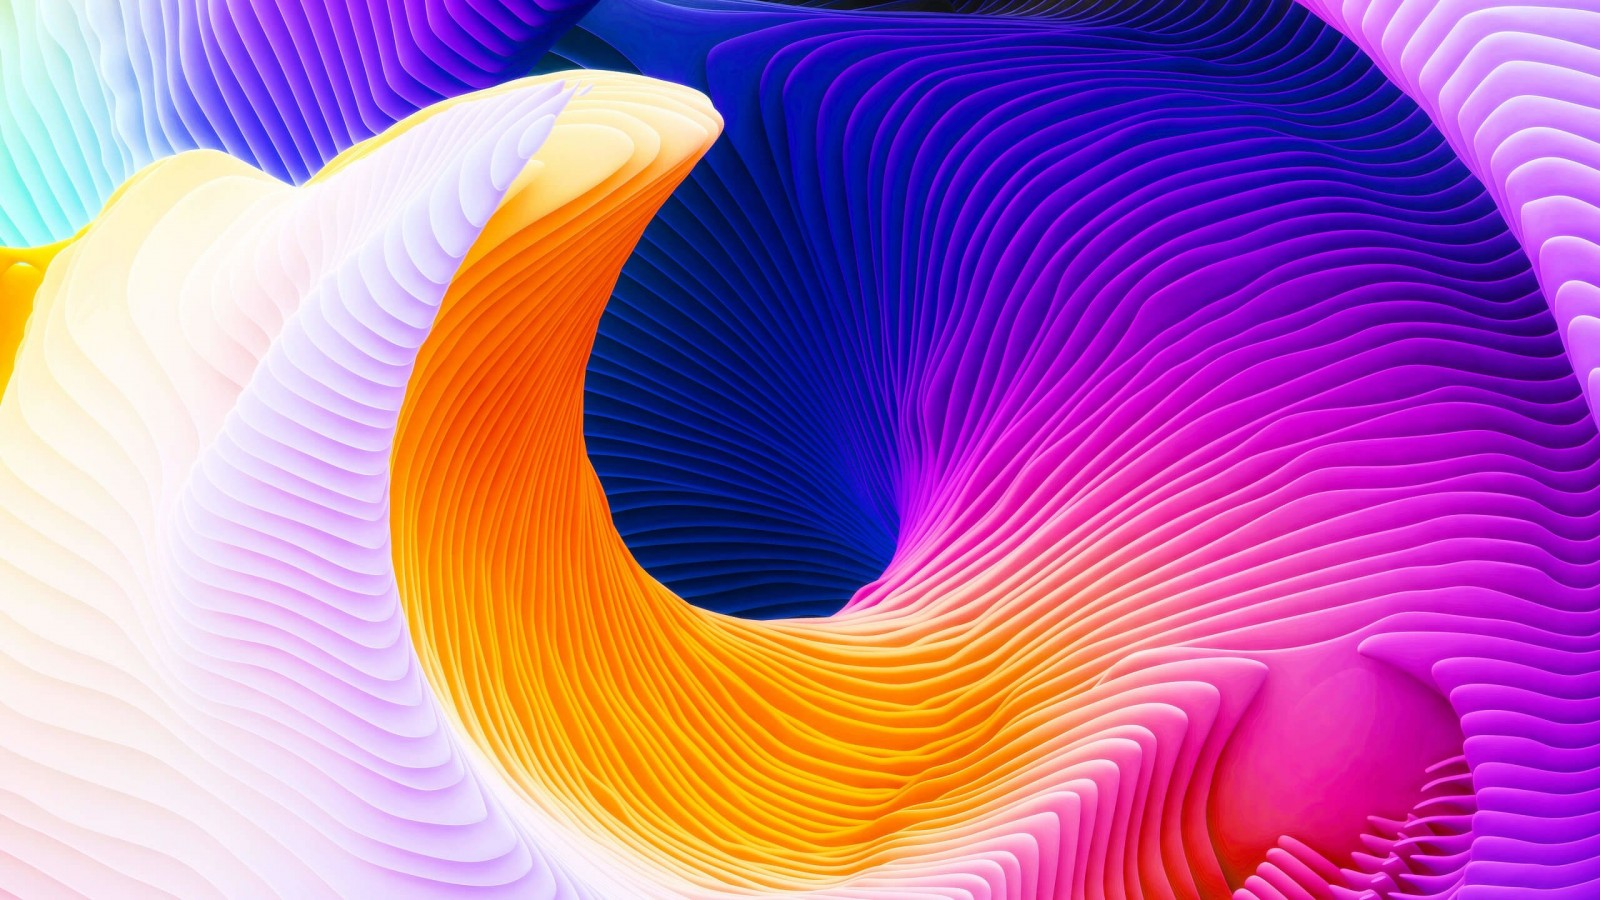 Download Colorful Spiral HD wallpaper for 1600 x 900 - HDwallpapers ...: hdwallpapers.net/preview/colorful-spiral-wallpaper-for-1600x900-65...